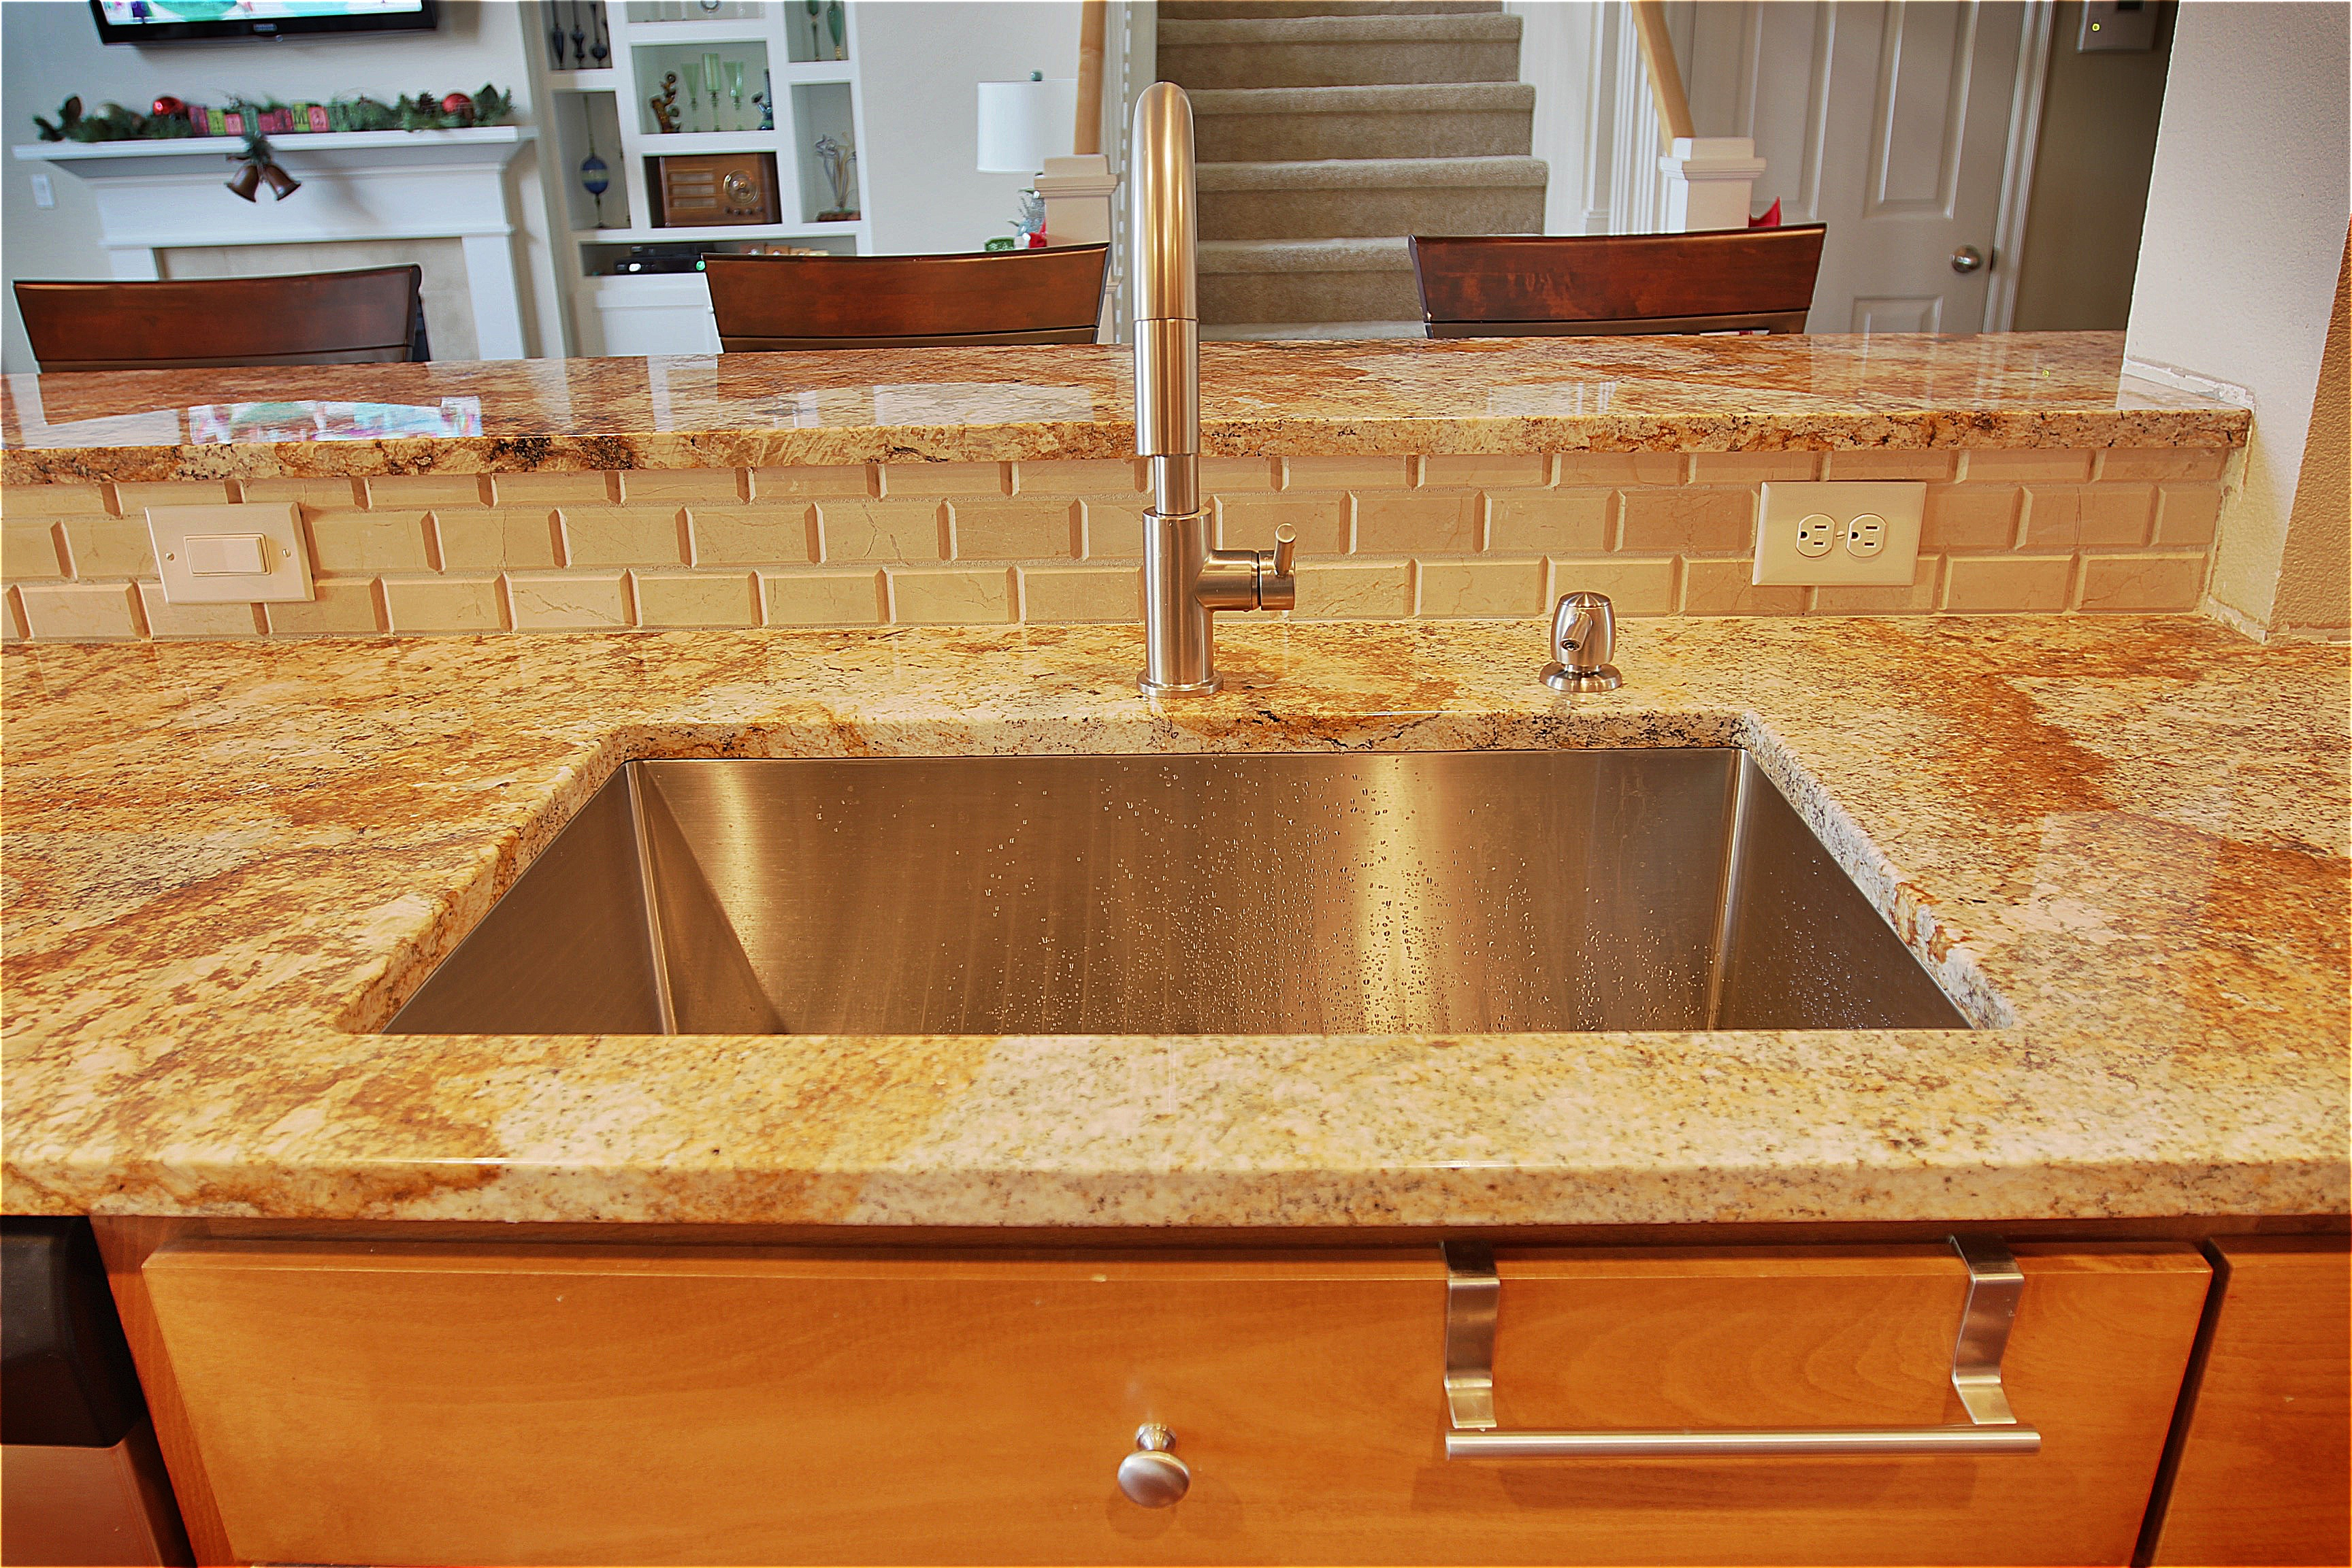 Undermount Sink Failure In Granite And Quartz